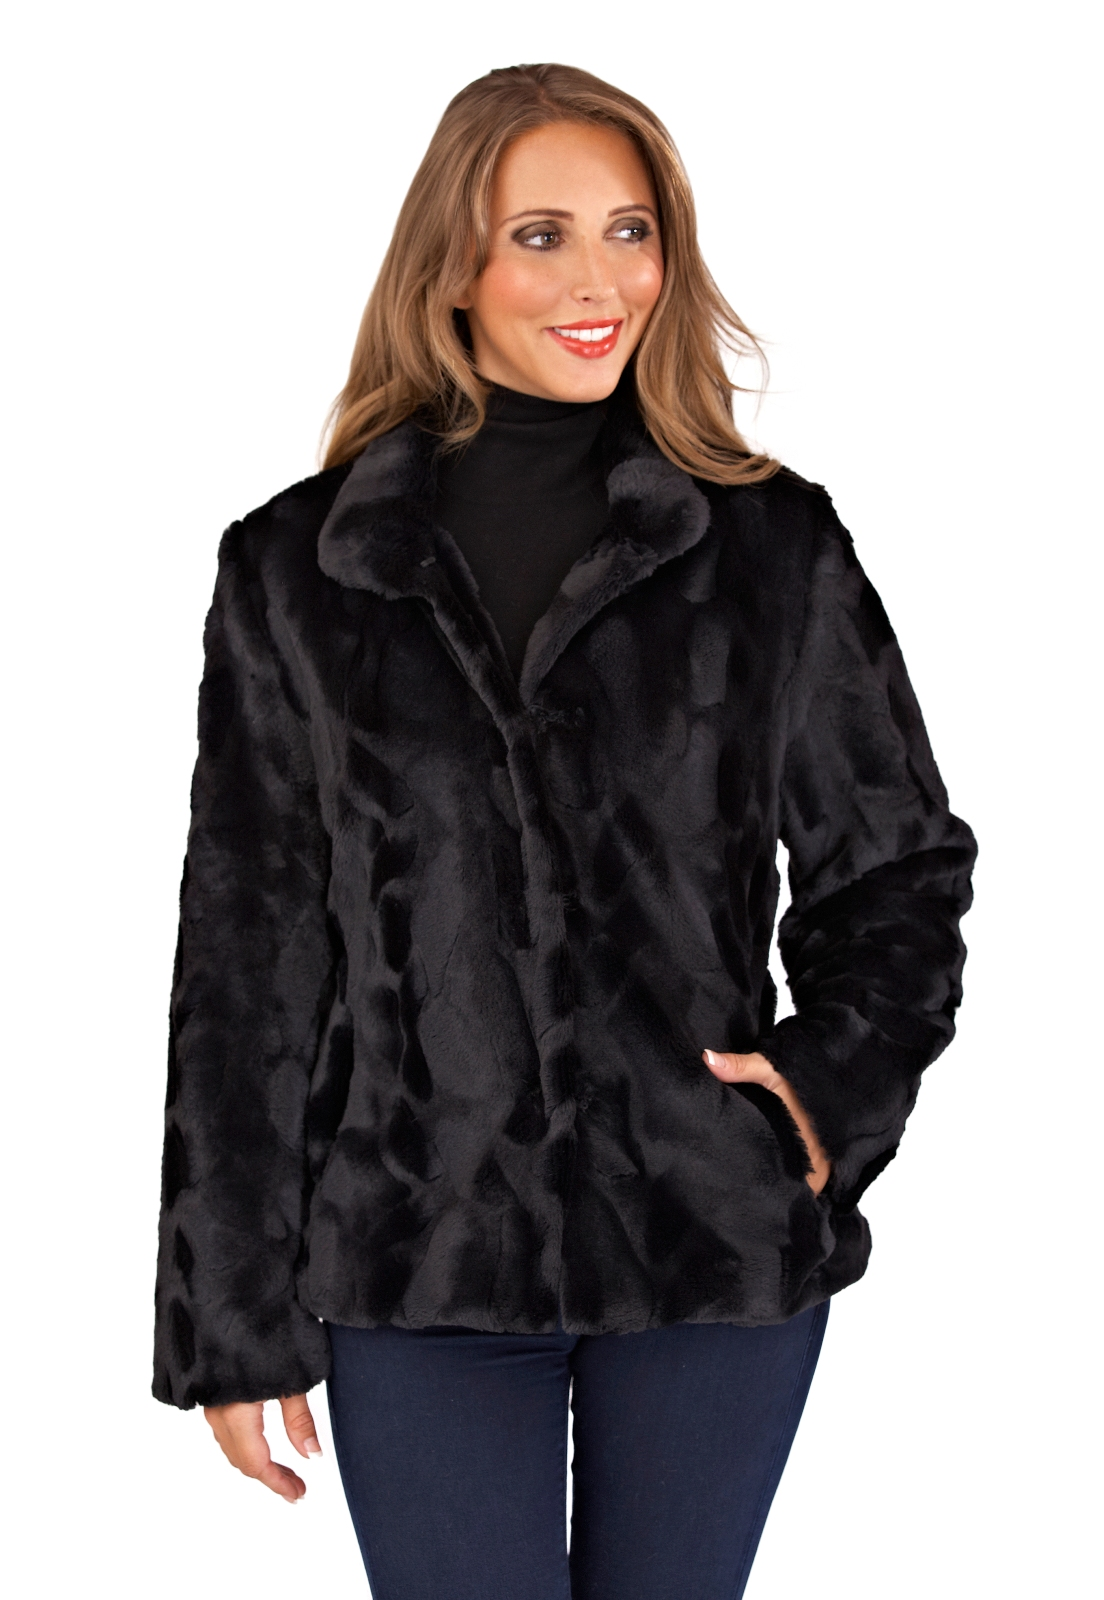 Shop for womens fur and faux fur jackets on tanahlot.tk Free shipping and free returns on eligible items. From The Community. Amazon Try Prime Women's Fur & Faux Fur Jackets & Coats Women Thicken Warm Winter Coat Hood Parka Overcoat Long Jacket Outwear. from $ 37 75 Prime. out of 5 .